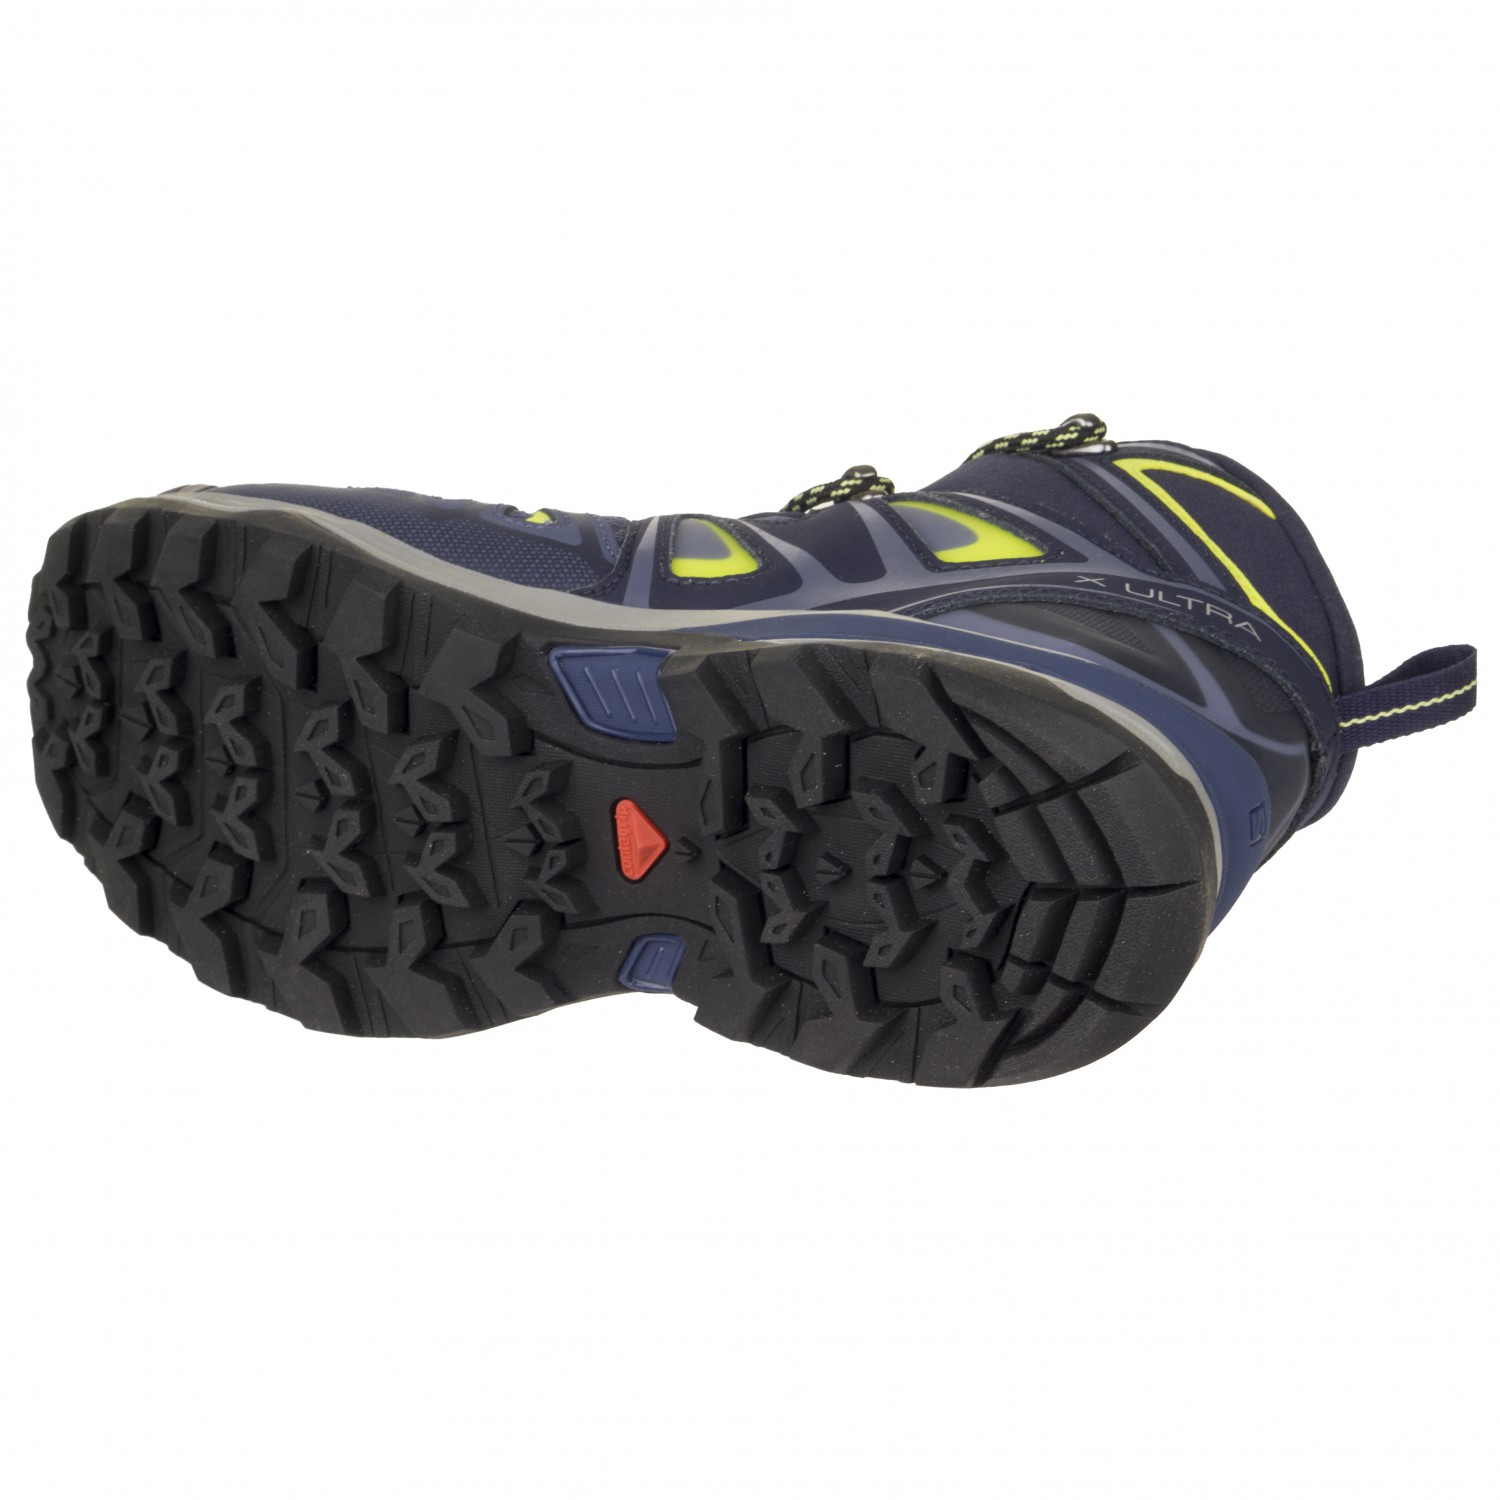 the best attitude 57320 ddb9e Salomon - Women's X Ultra 3 Mid GTX - Wanderschuhe - Magnet / Black /  Monument | 4 (UK)